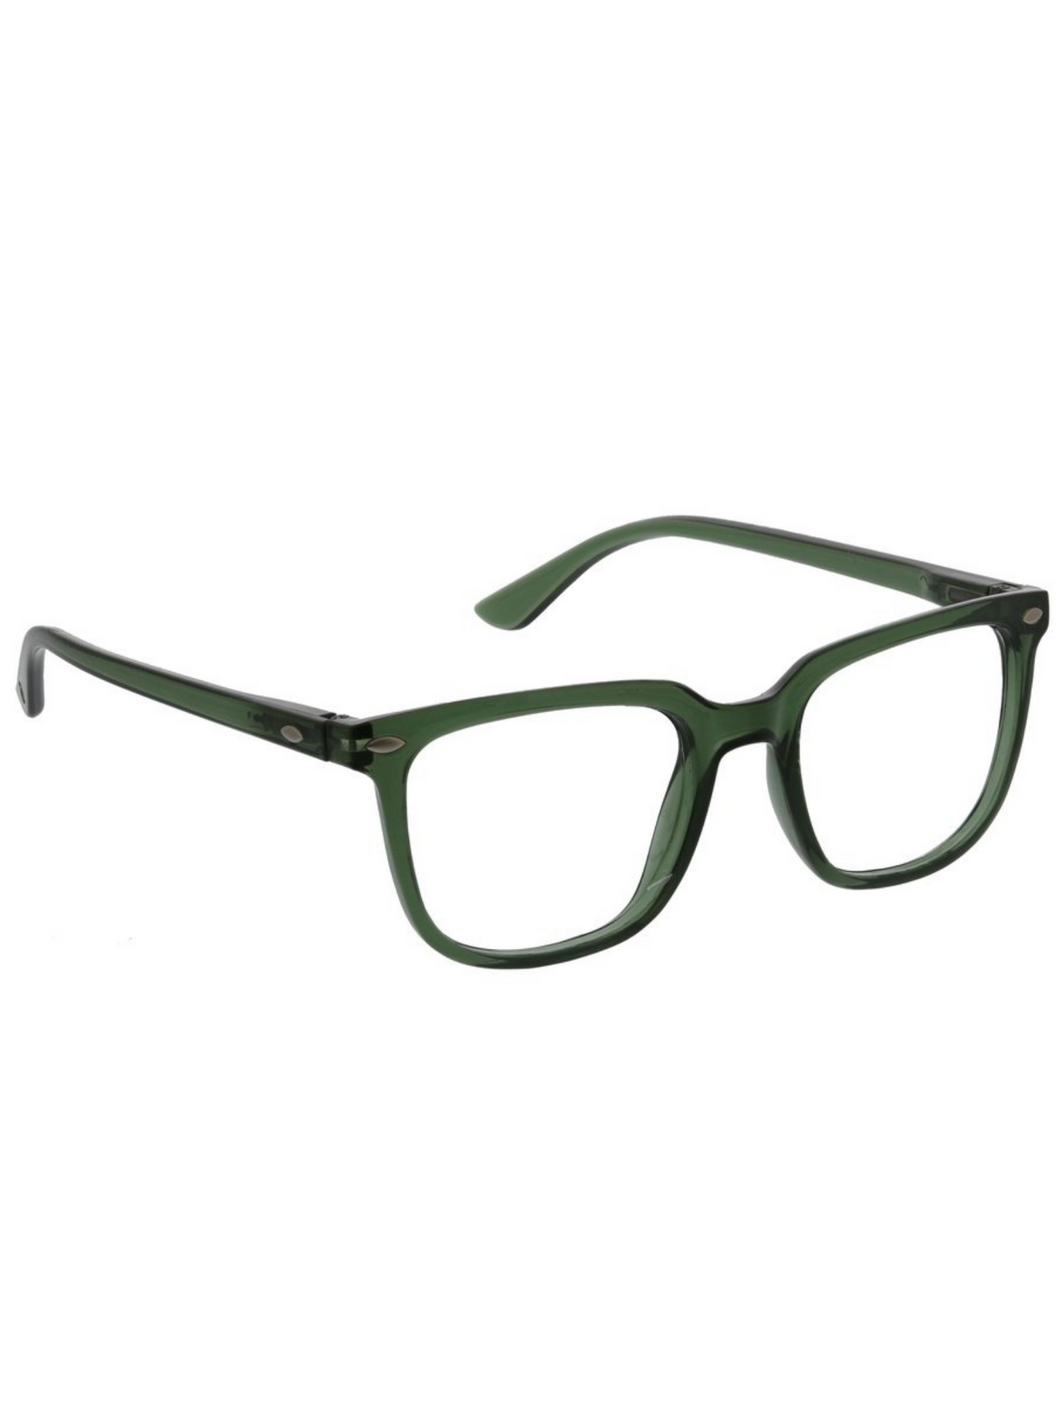 Tycoon Blue Light Glasses - Green